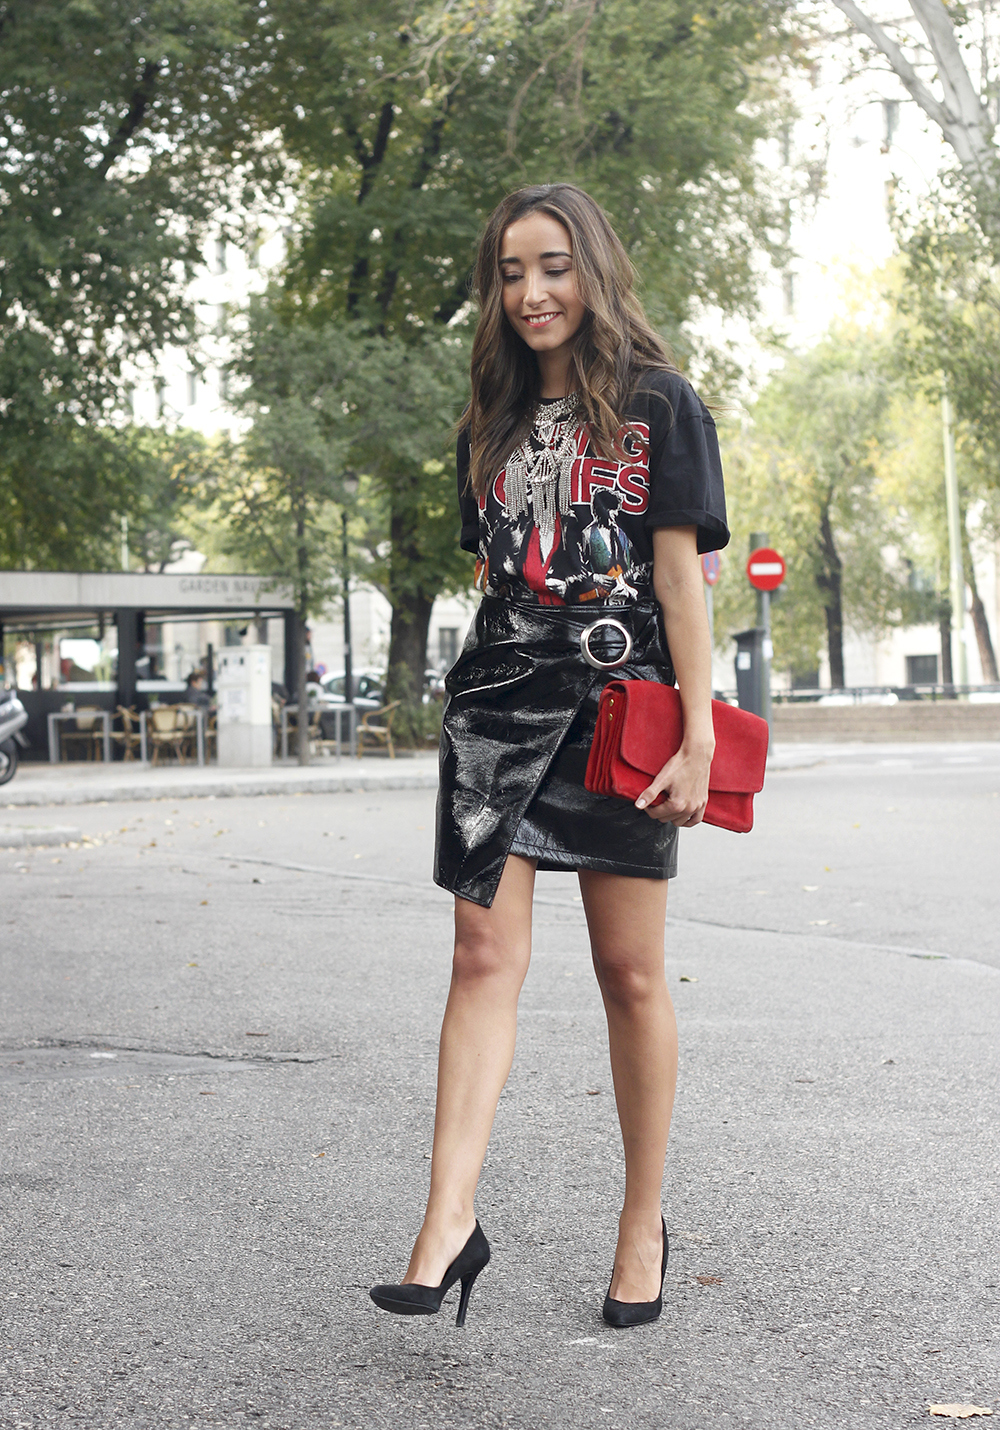 patent leather skirt t-shirt necklace heels leather jacket outfit style fashion04